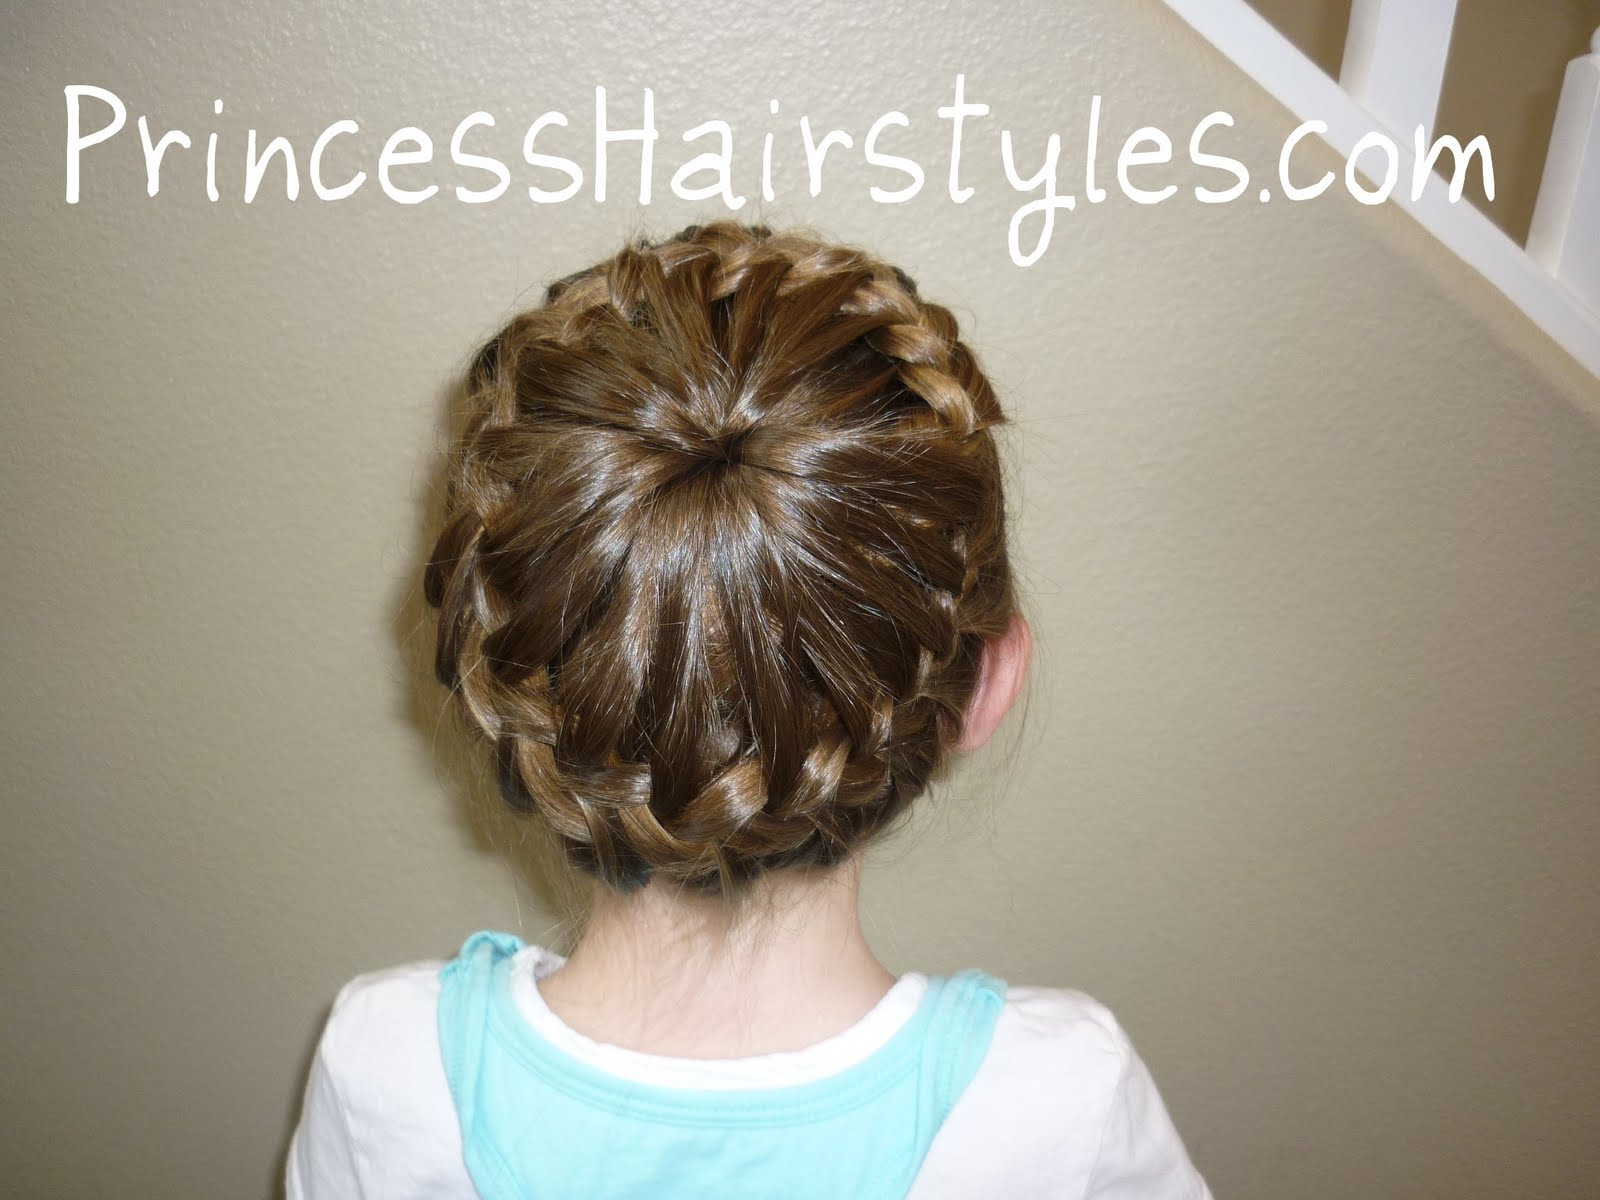 Or, you could double the braids up and make french braid pigtail buns!